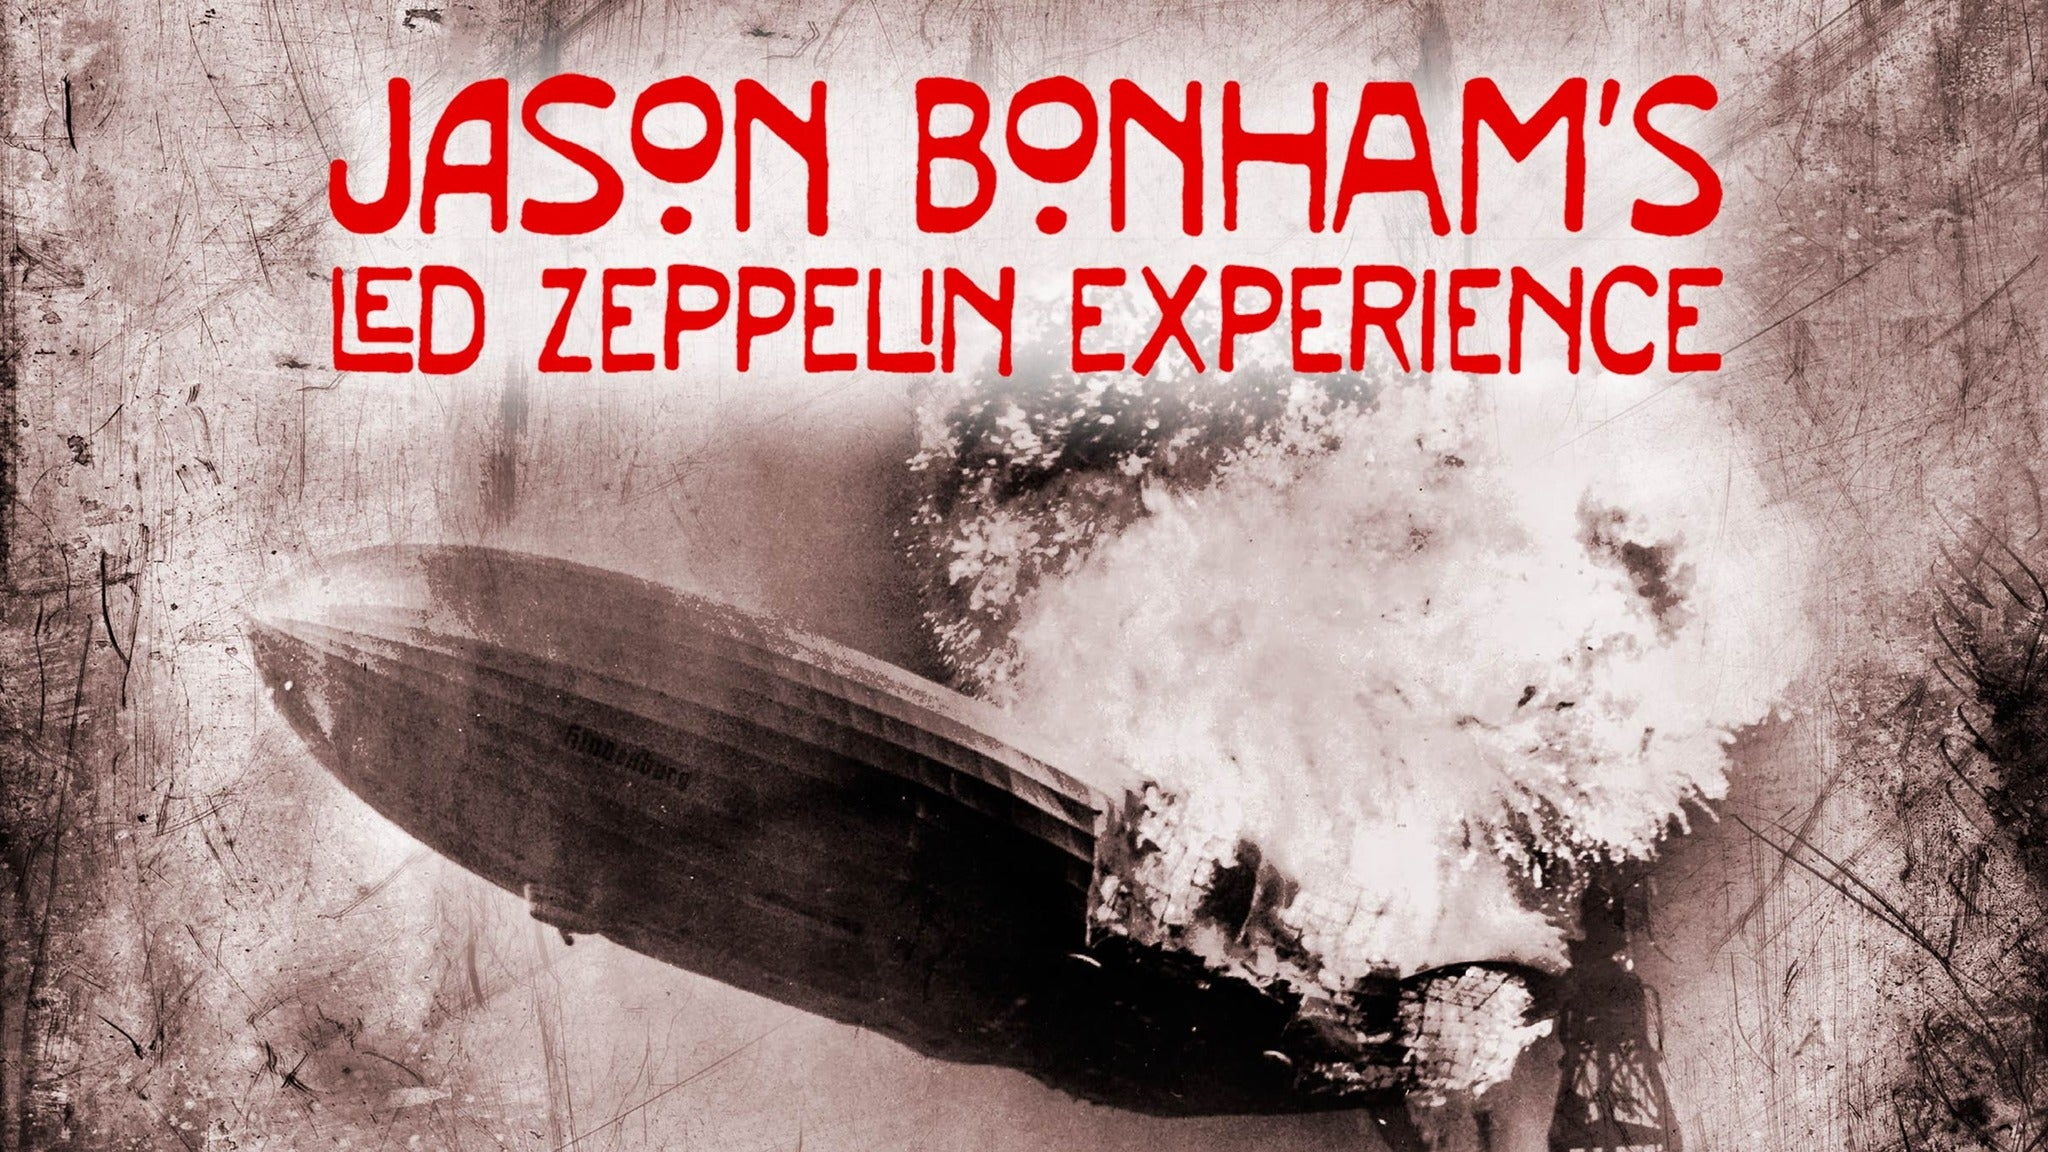 Jason Bonham's Led Zeppelin Experience at Star Plaza Theatre - Merrillville, IN 46410